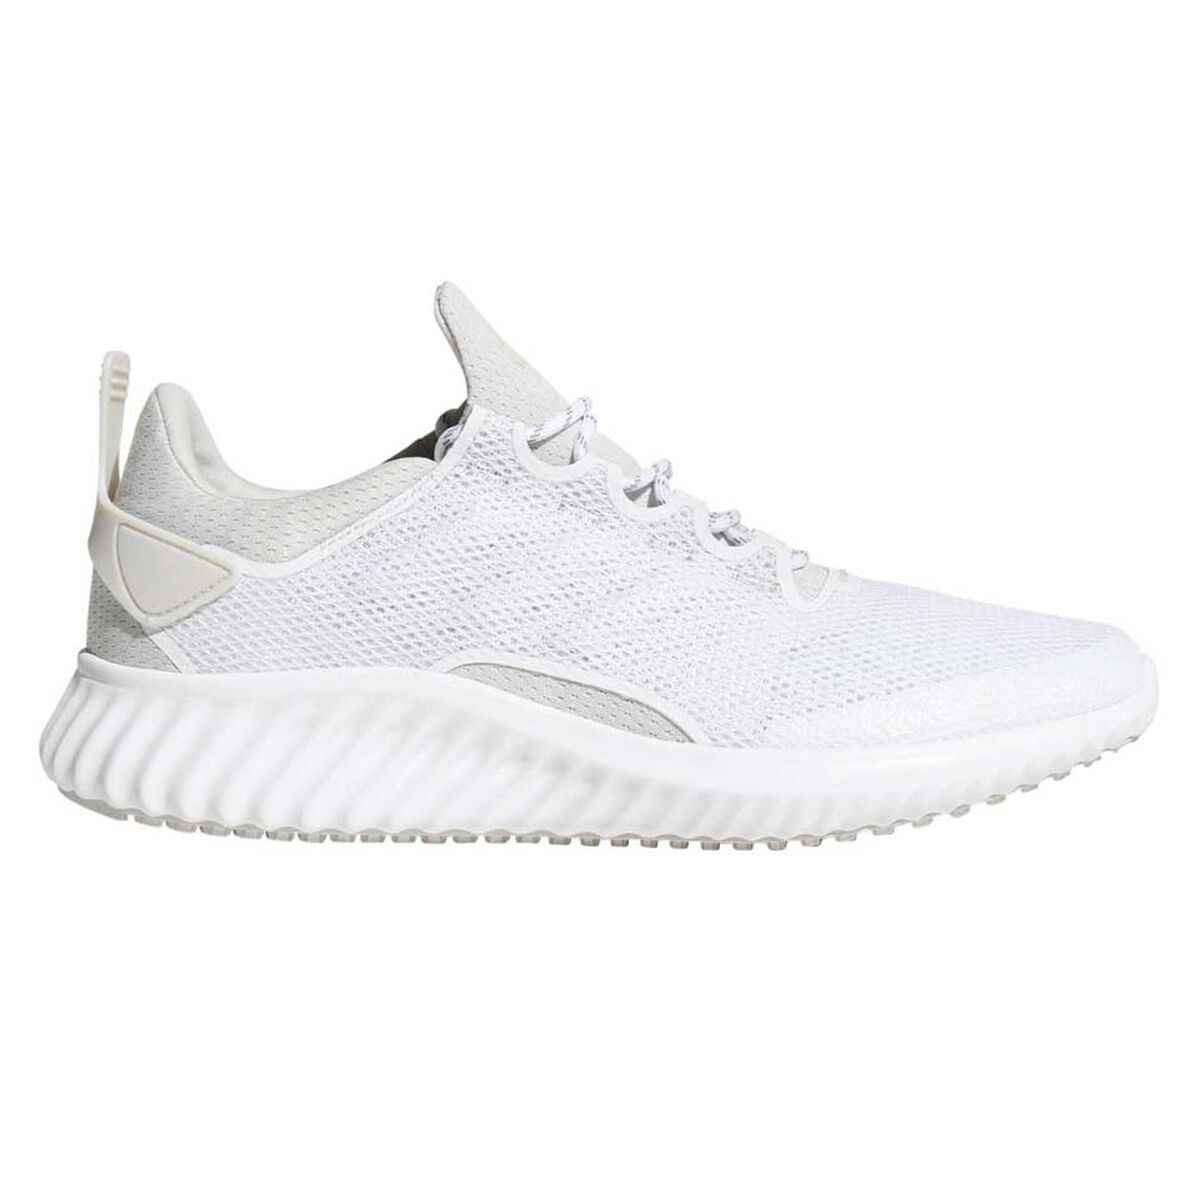 adidas Alphabounce CR Mens Running Shoes